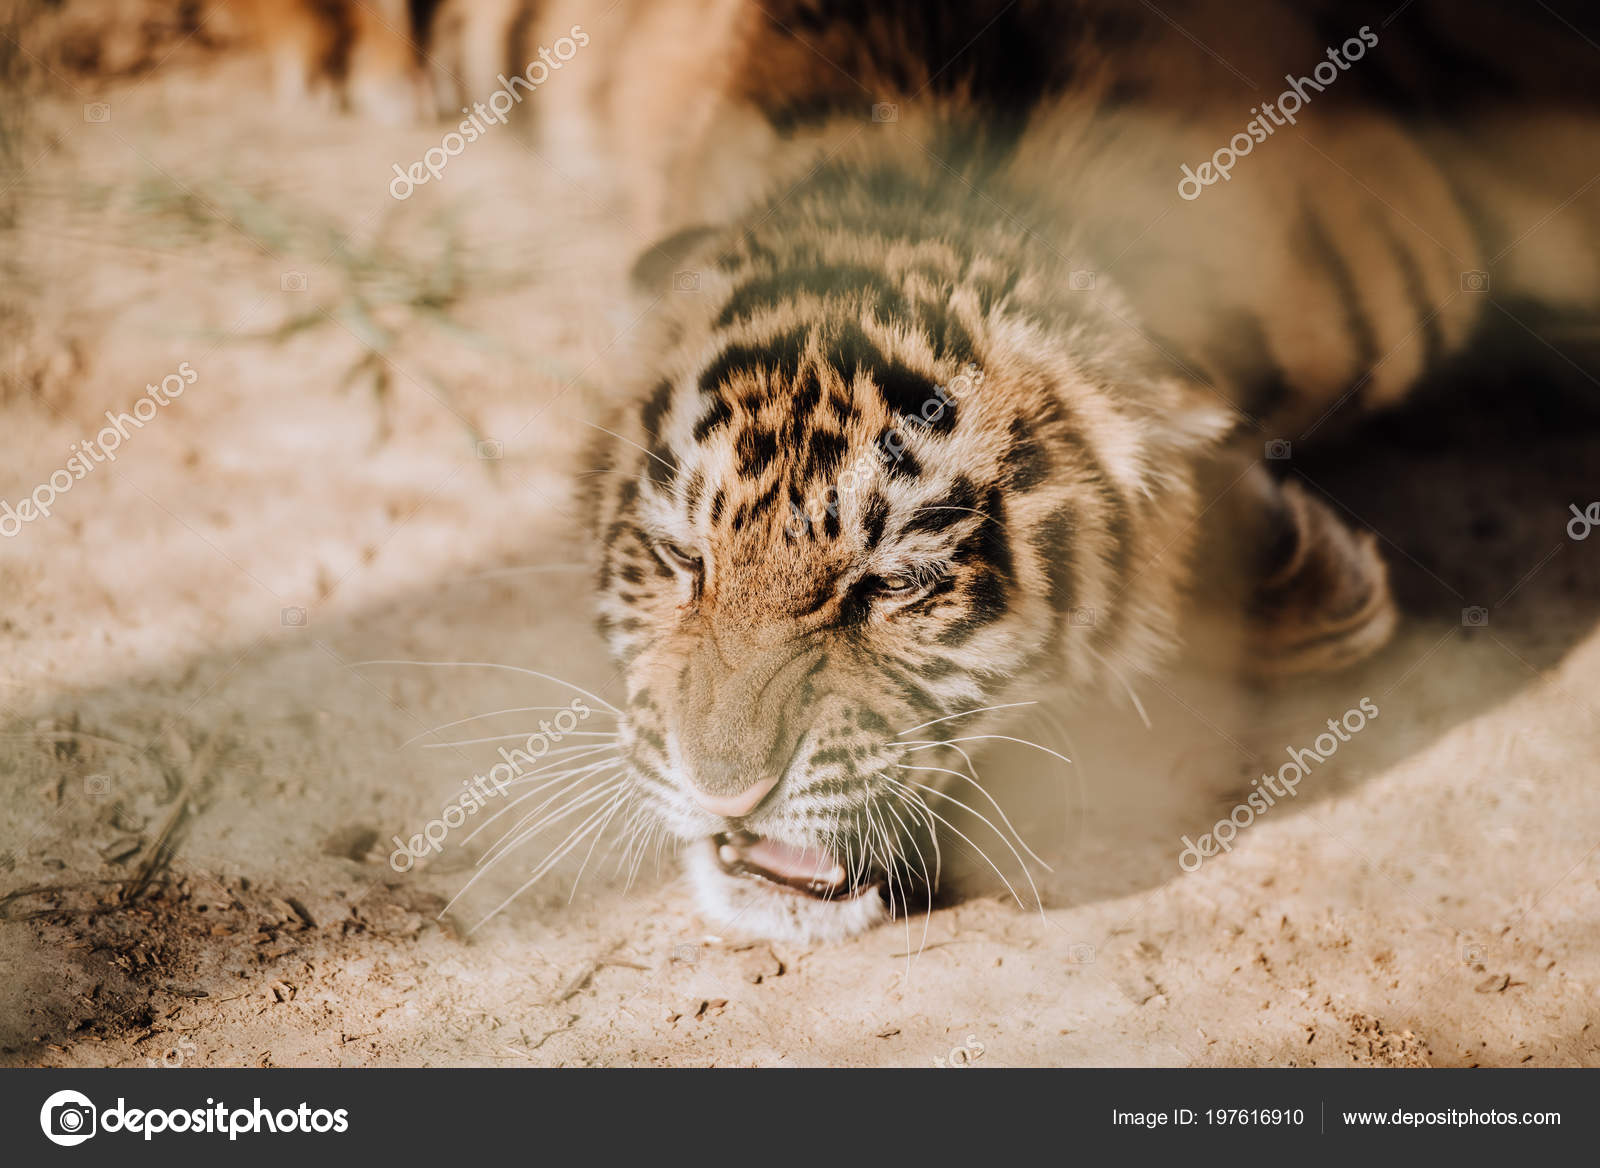 Close view cute tiger cub zoo stock photo vadimvasenin 197616910 close up view of cute tiger cub at zoo photo by vadimvasenin thecheapjerseys Image collections